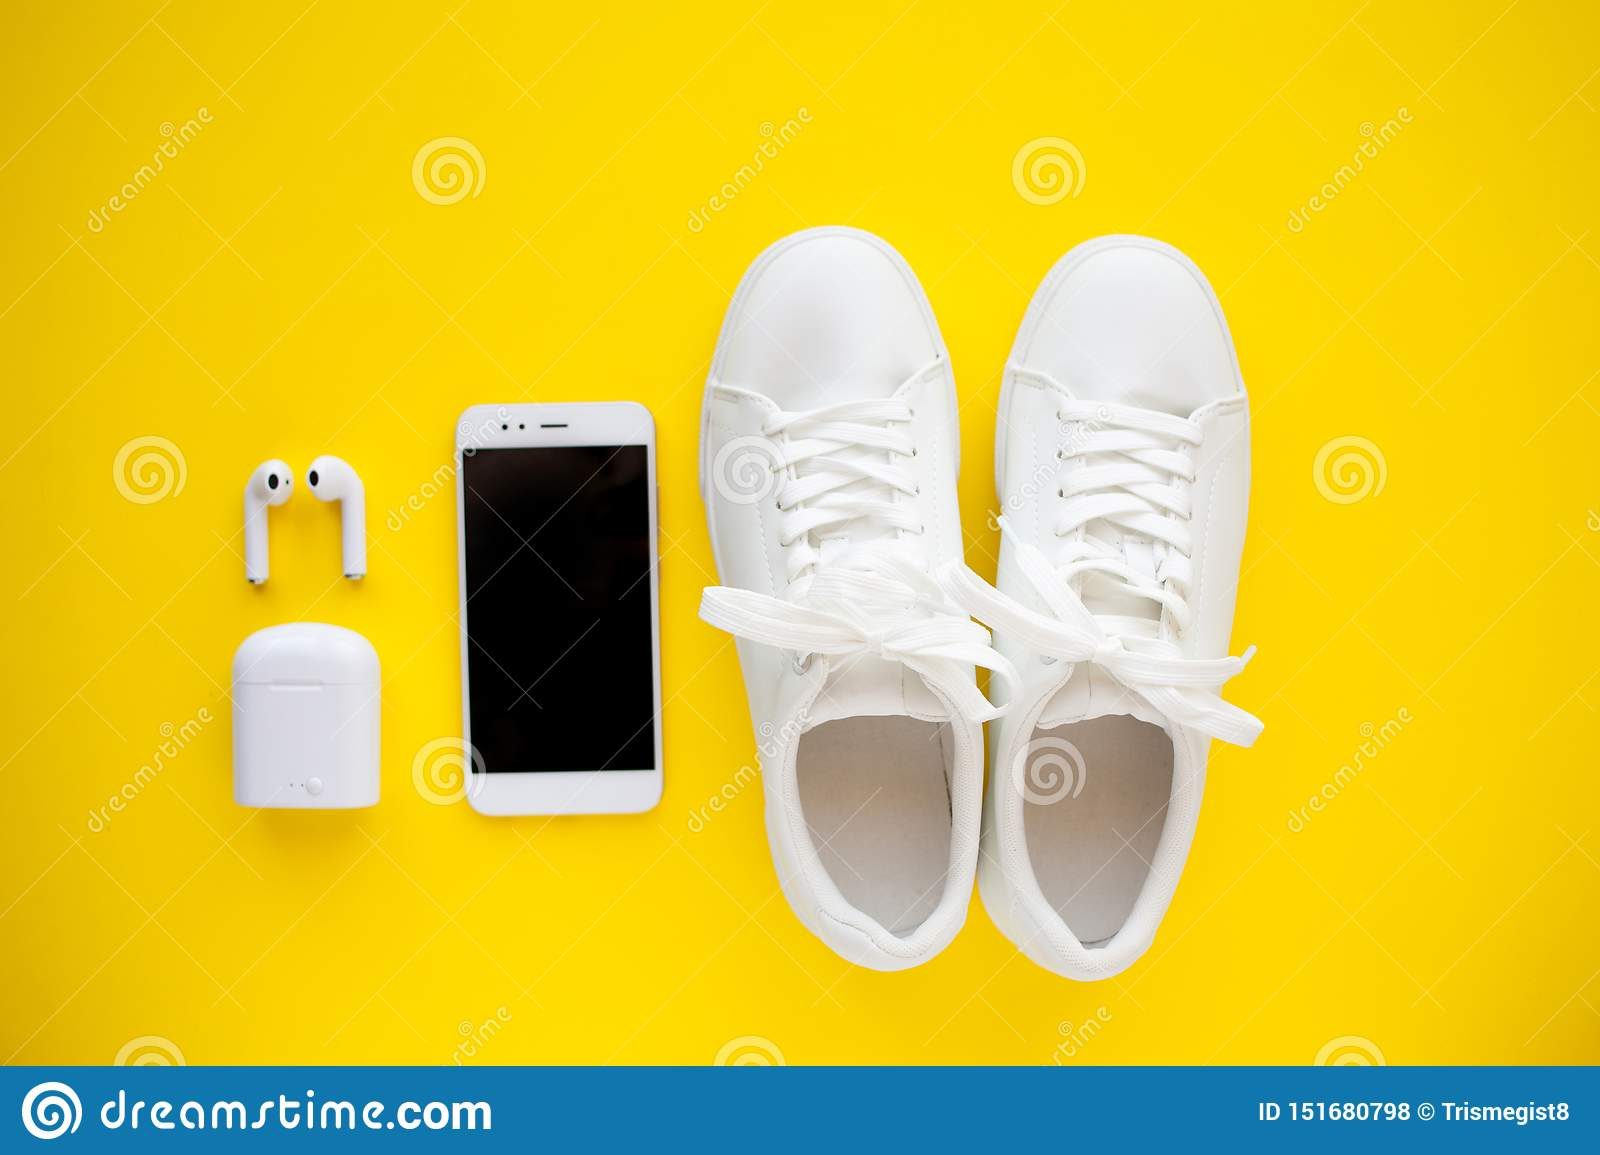 White sneackers, wireless headphones and smartphone are lying on a bright yellow background.